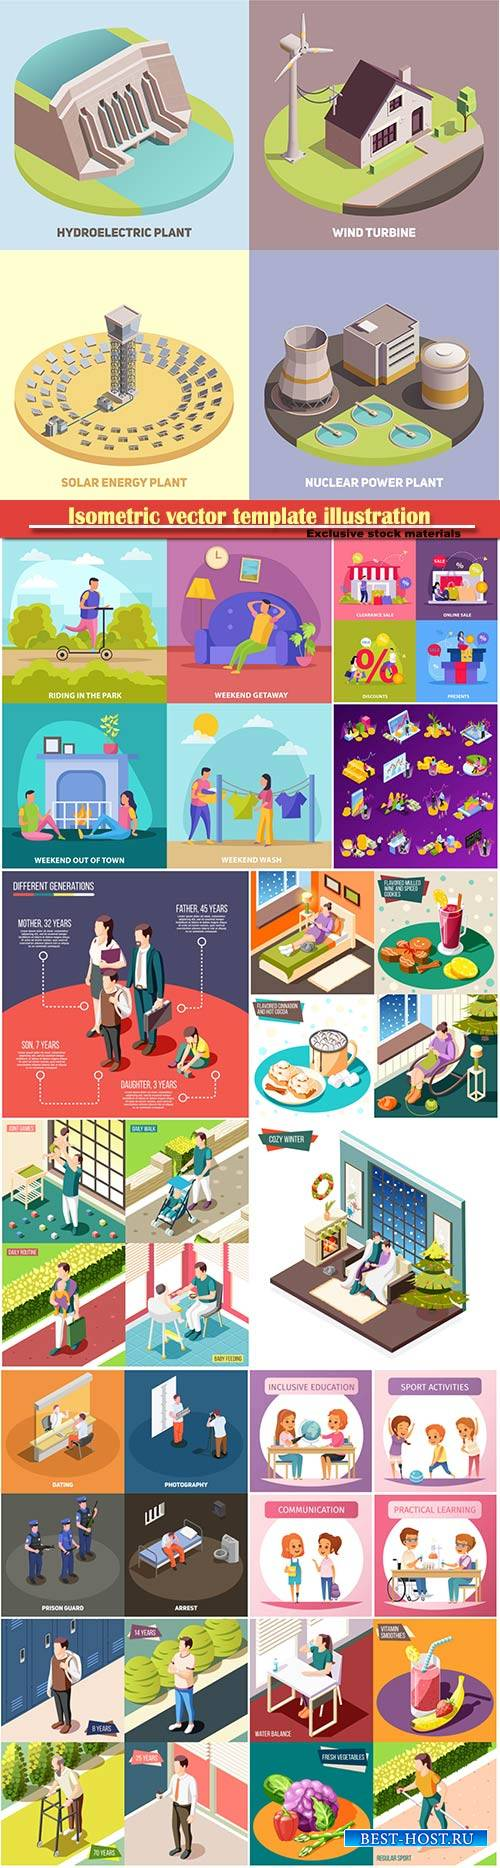 Isometric vector template illustration # 19